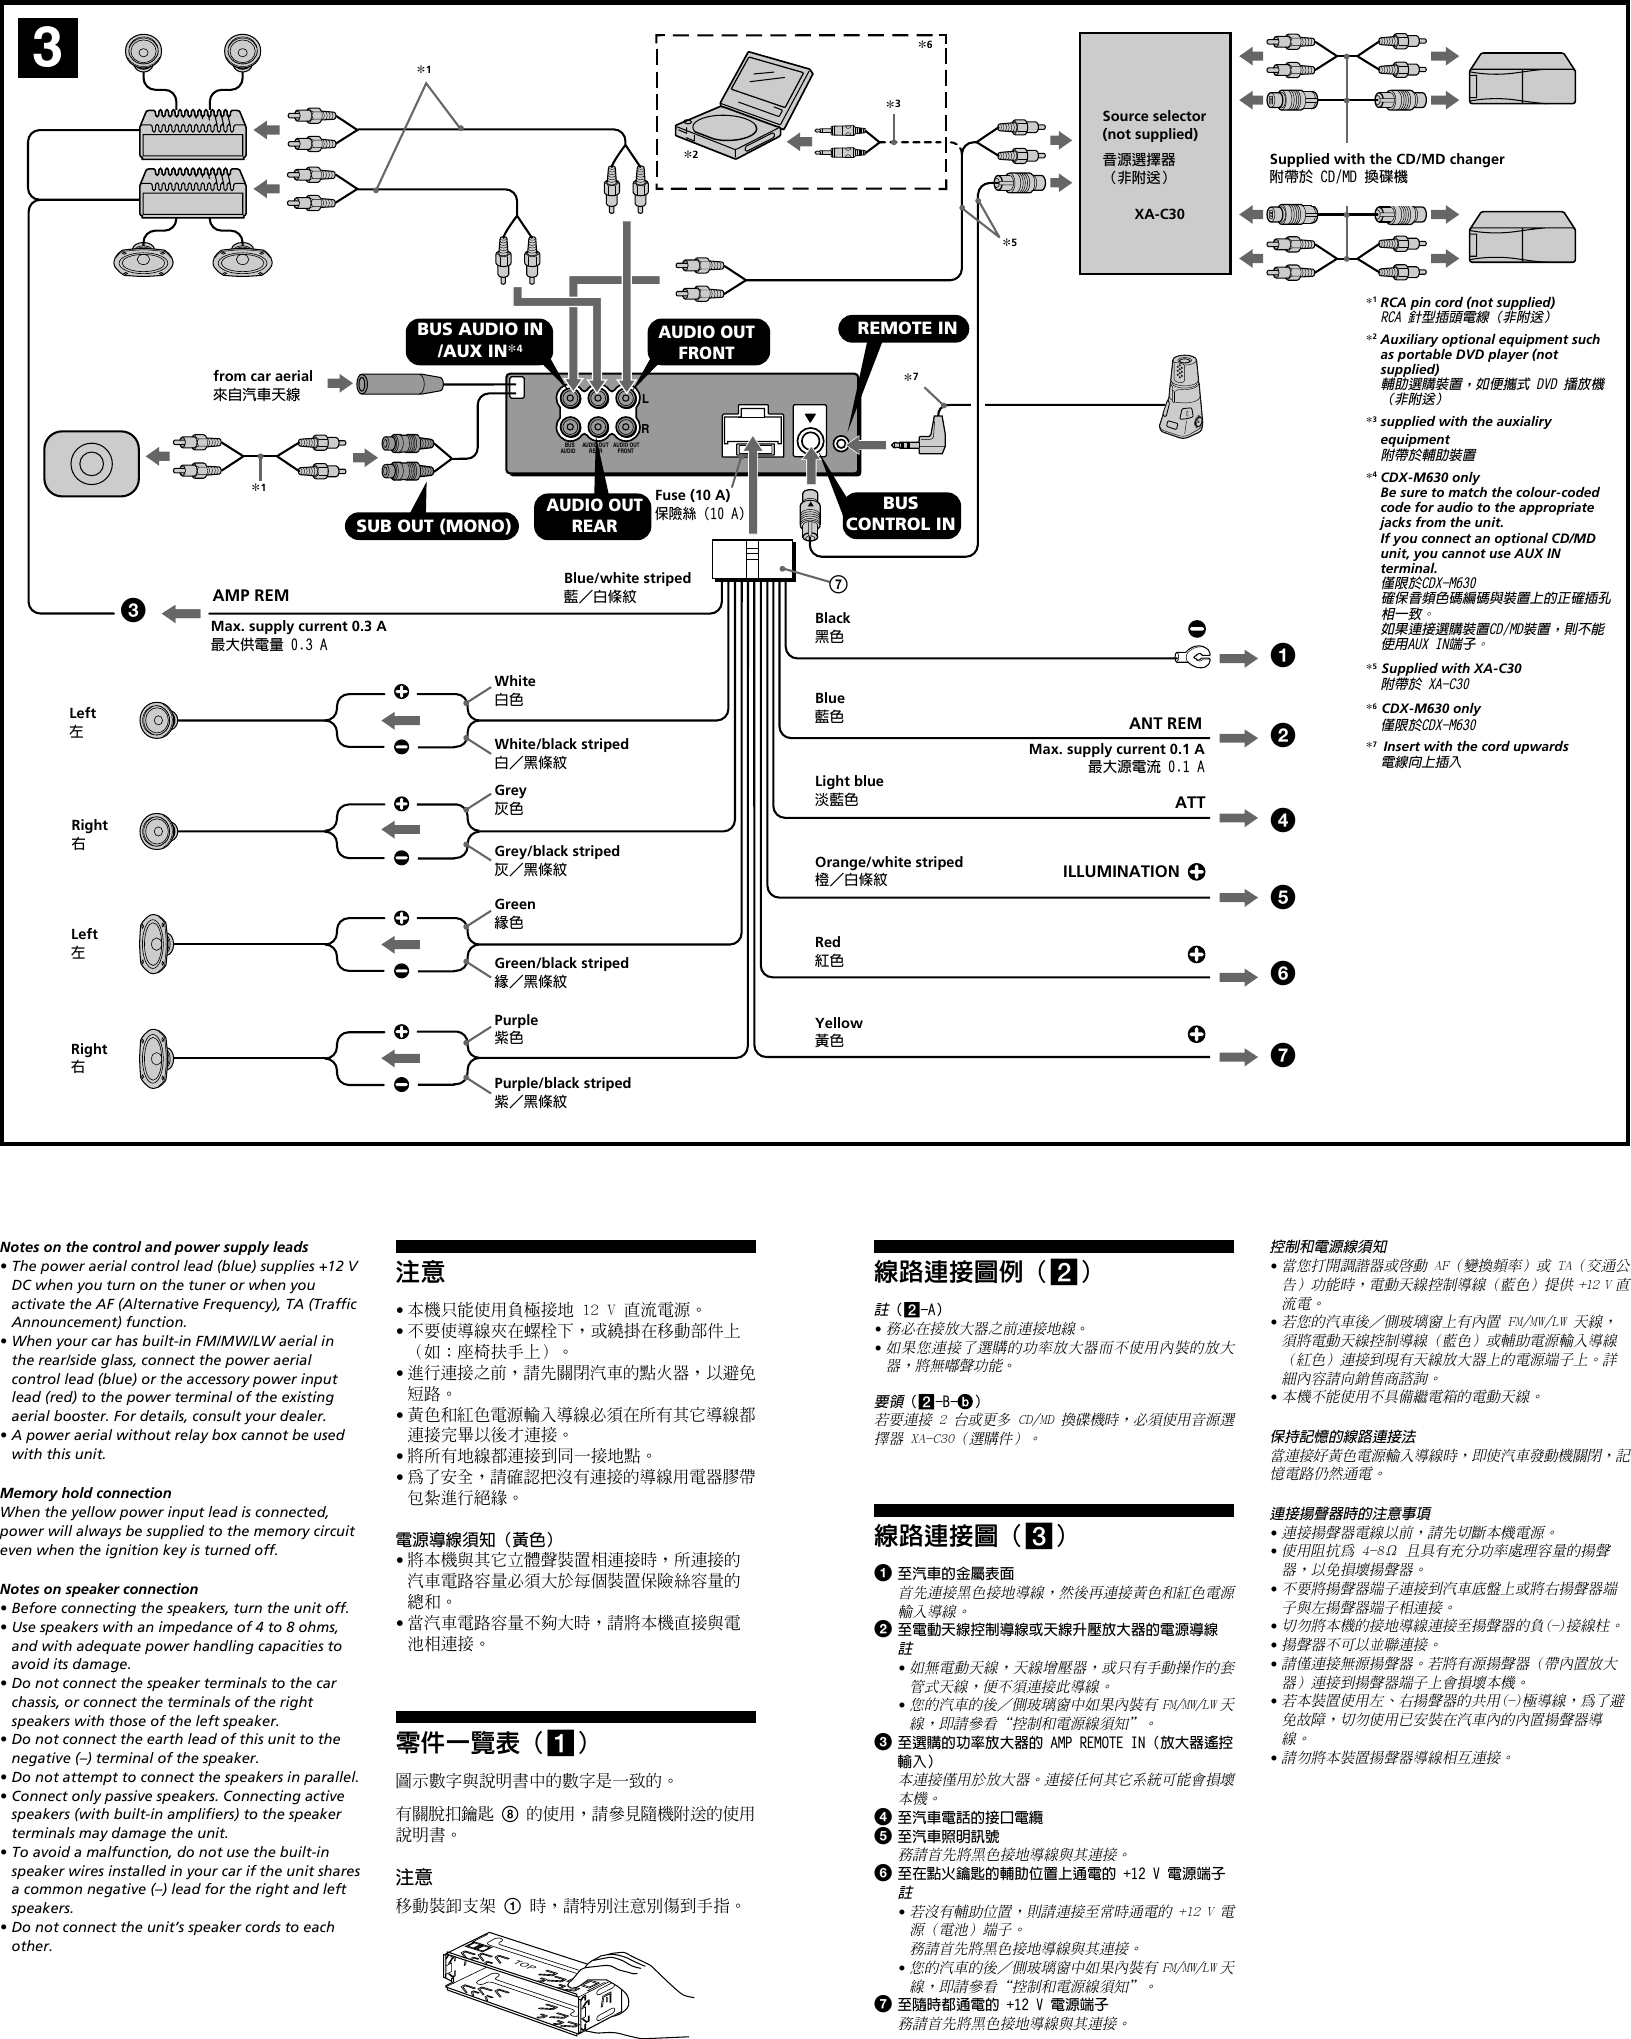 sony cdx l350 wiring diagram computer motherboard parts best image 2018 xplod drive s gt40w